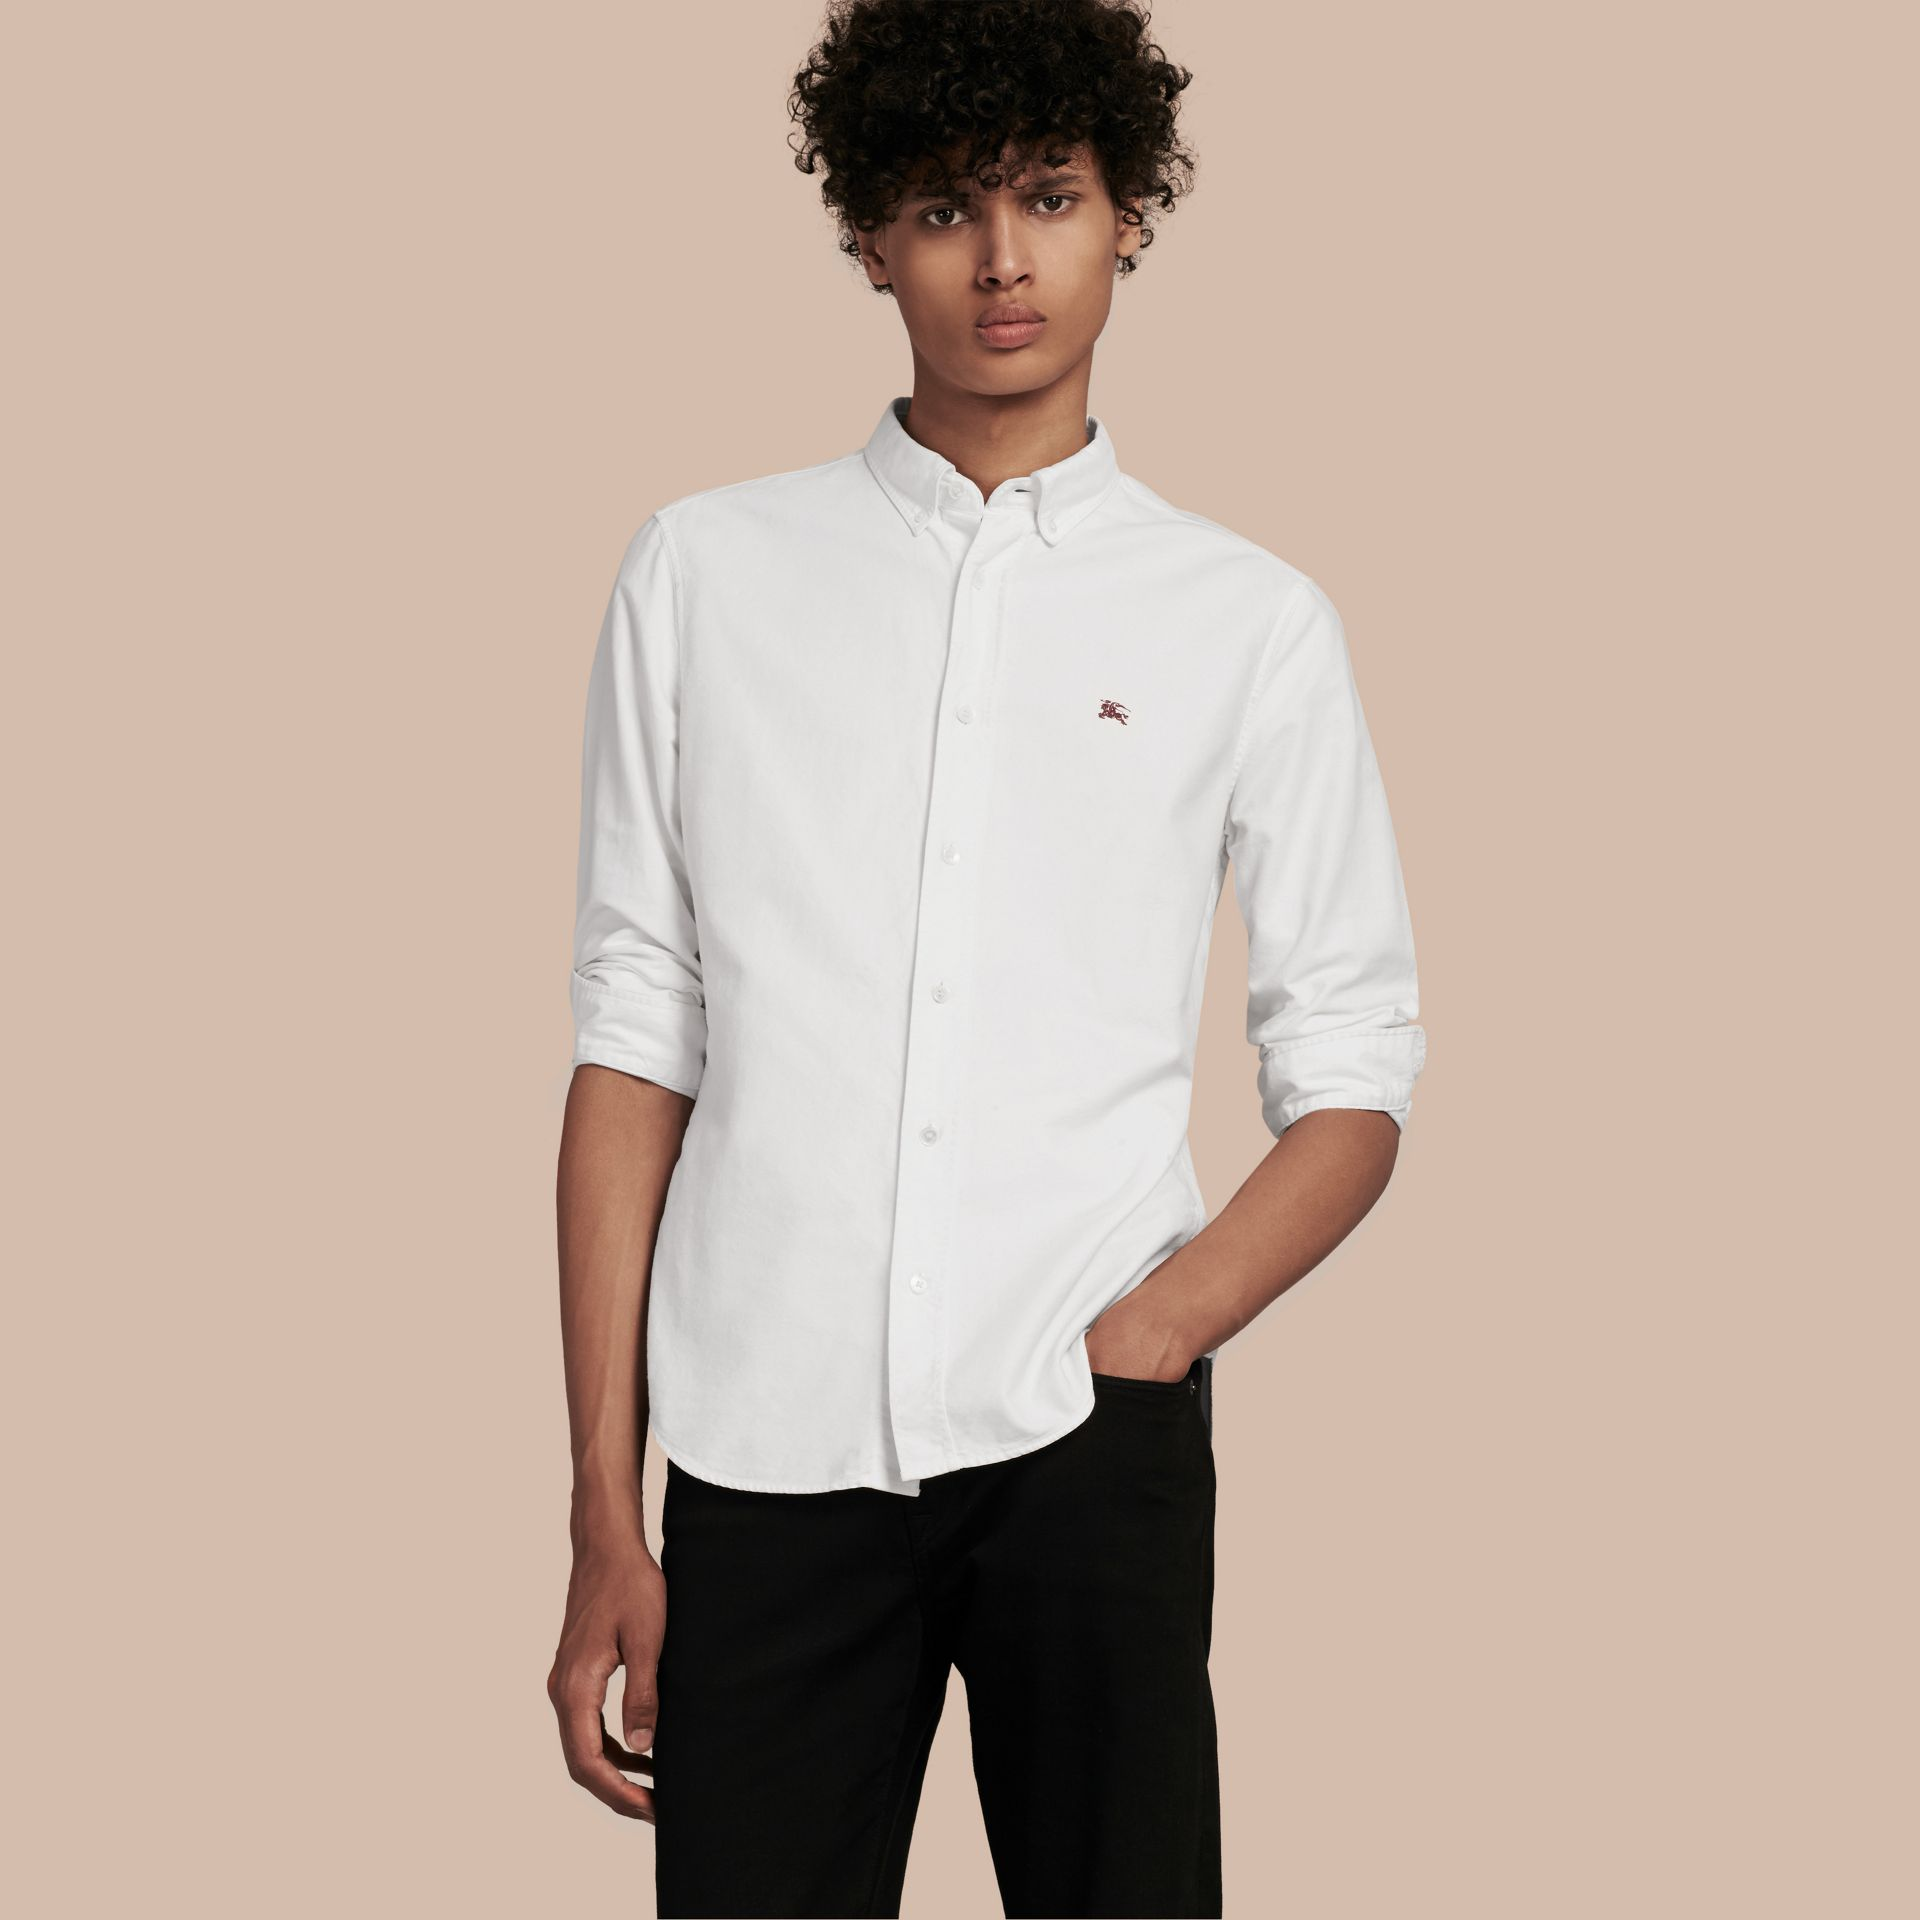 Cotton Oxford Shirt in White - Men | Burberry Singapore - gallery image 1